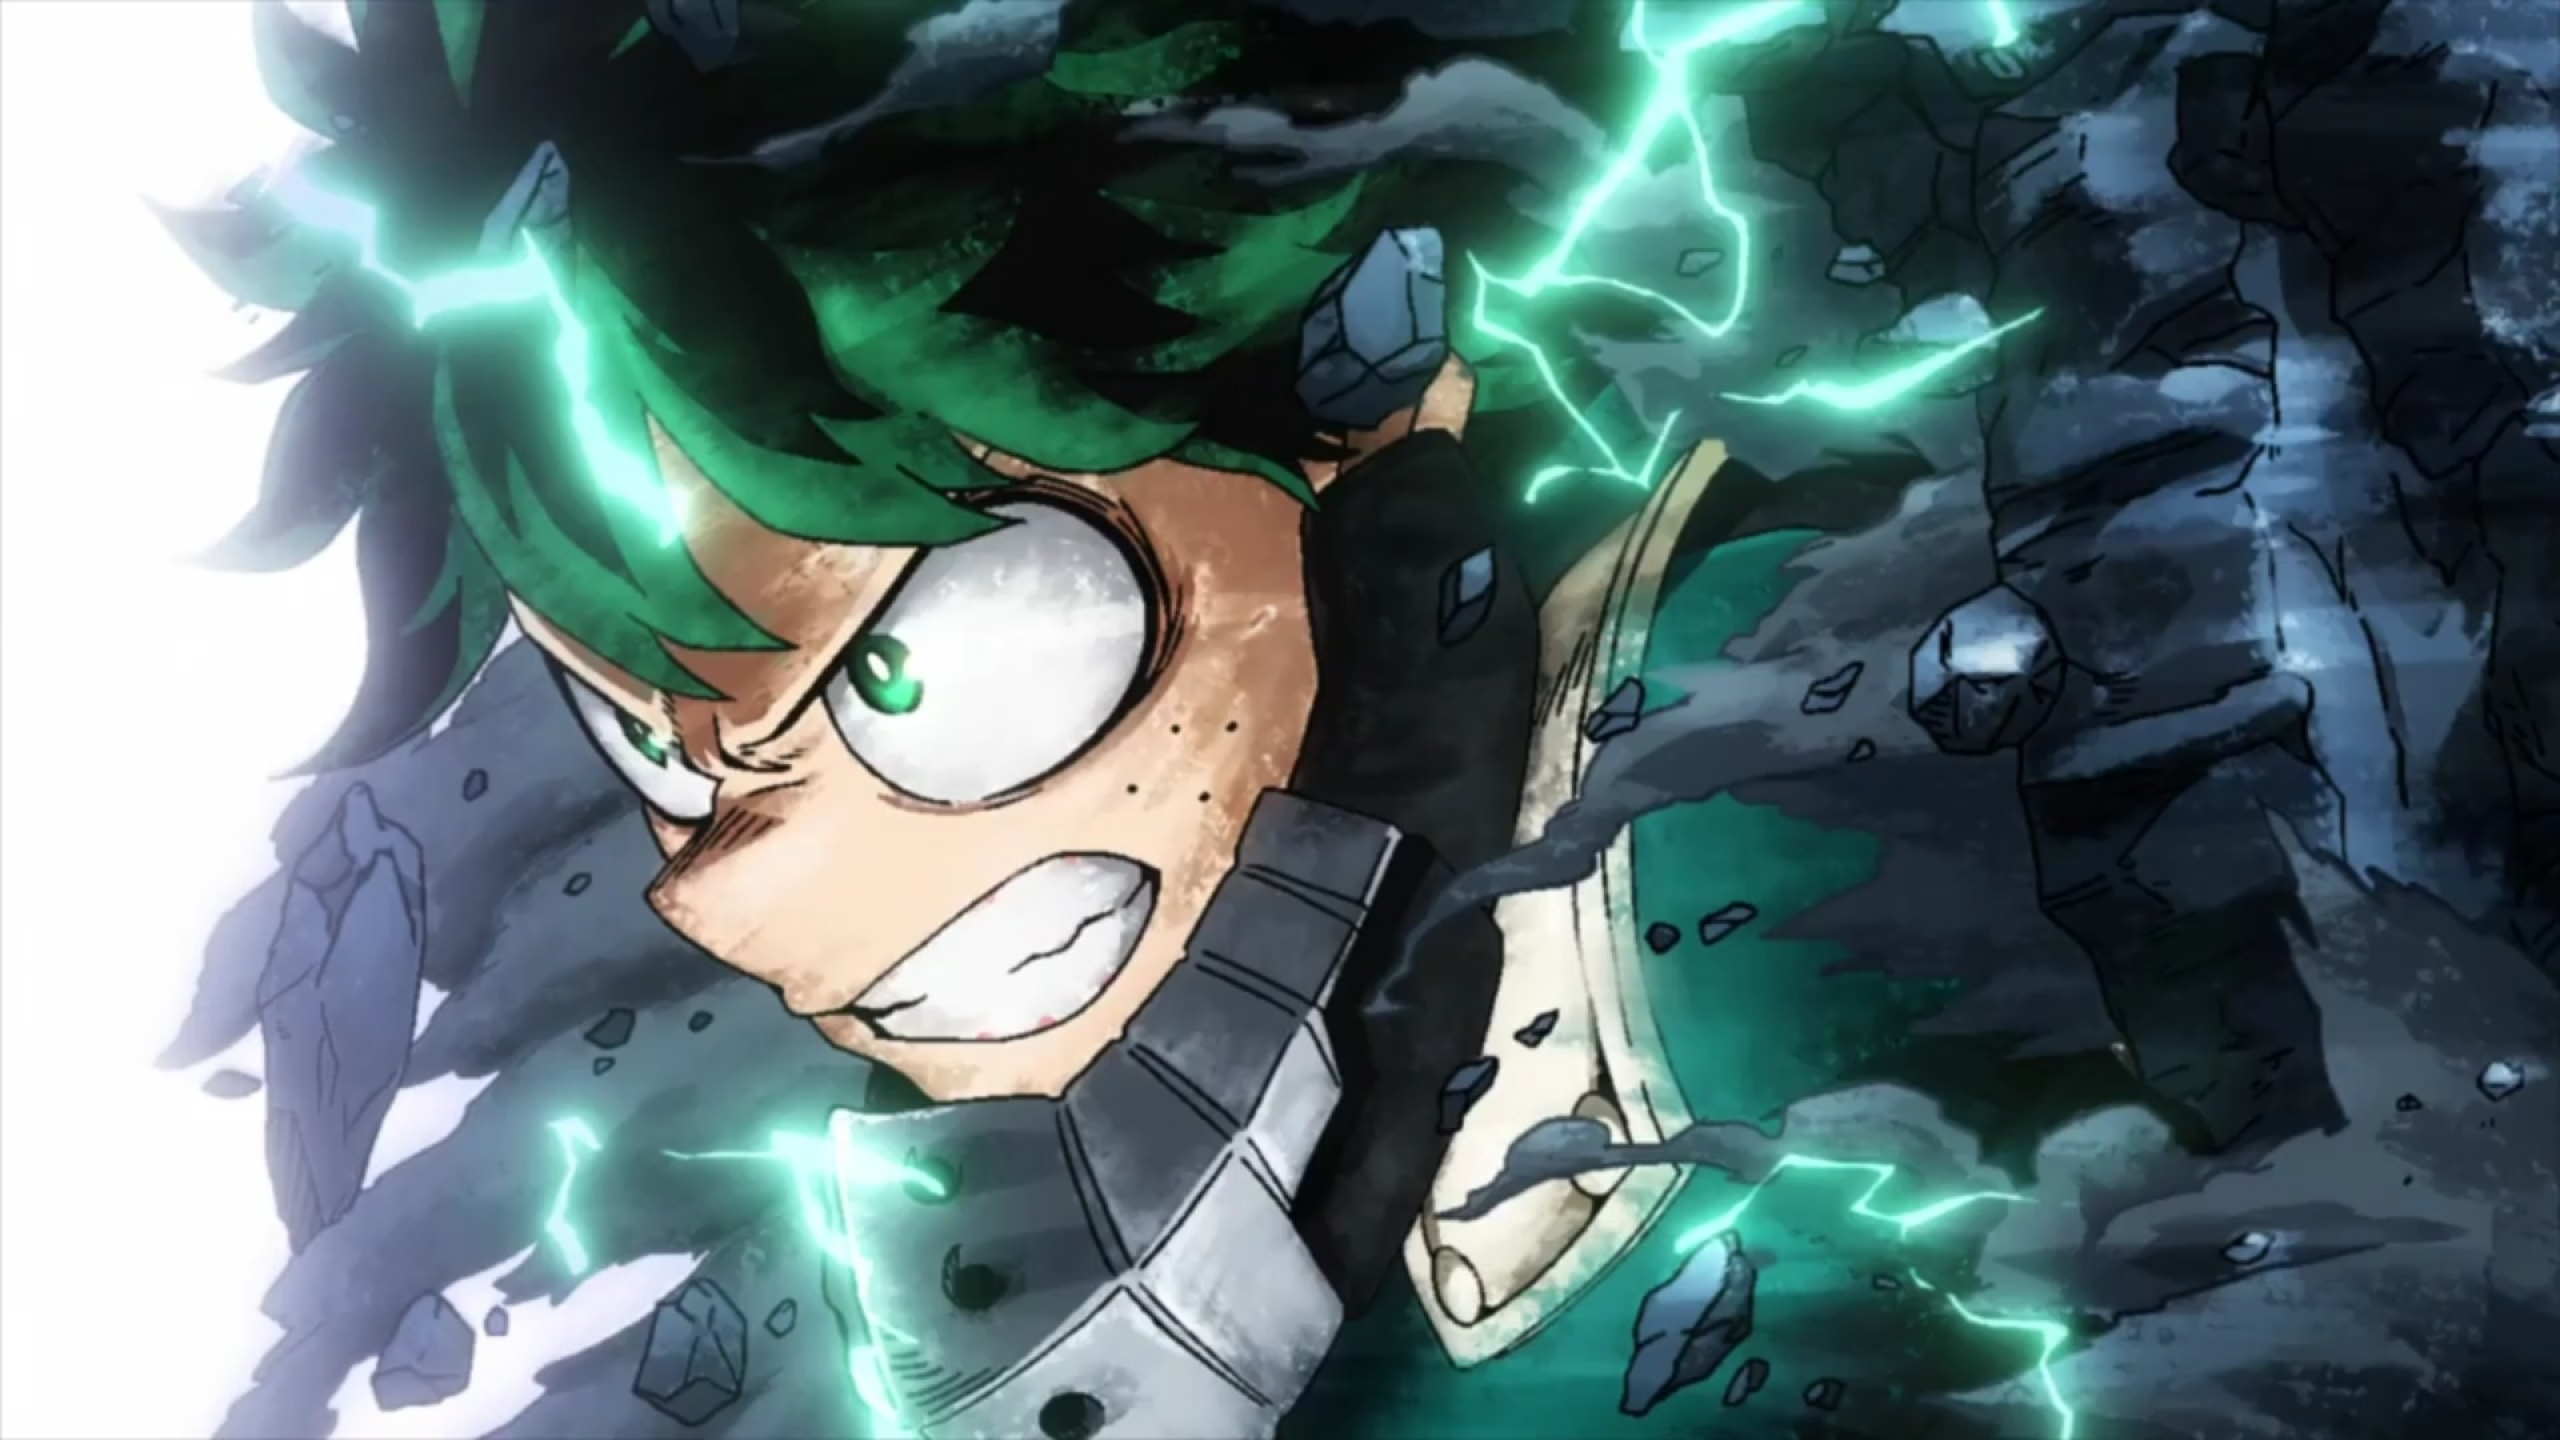 2560x1440 Deku My Hero Academia 1440p Resolution Wallpaper Hd Anime 4k Wallpapers Images Photos And Background